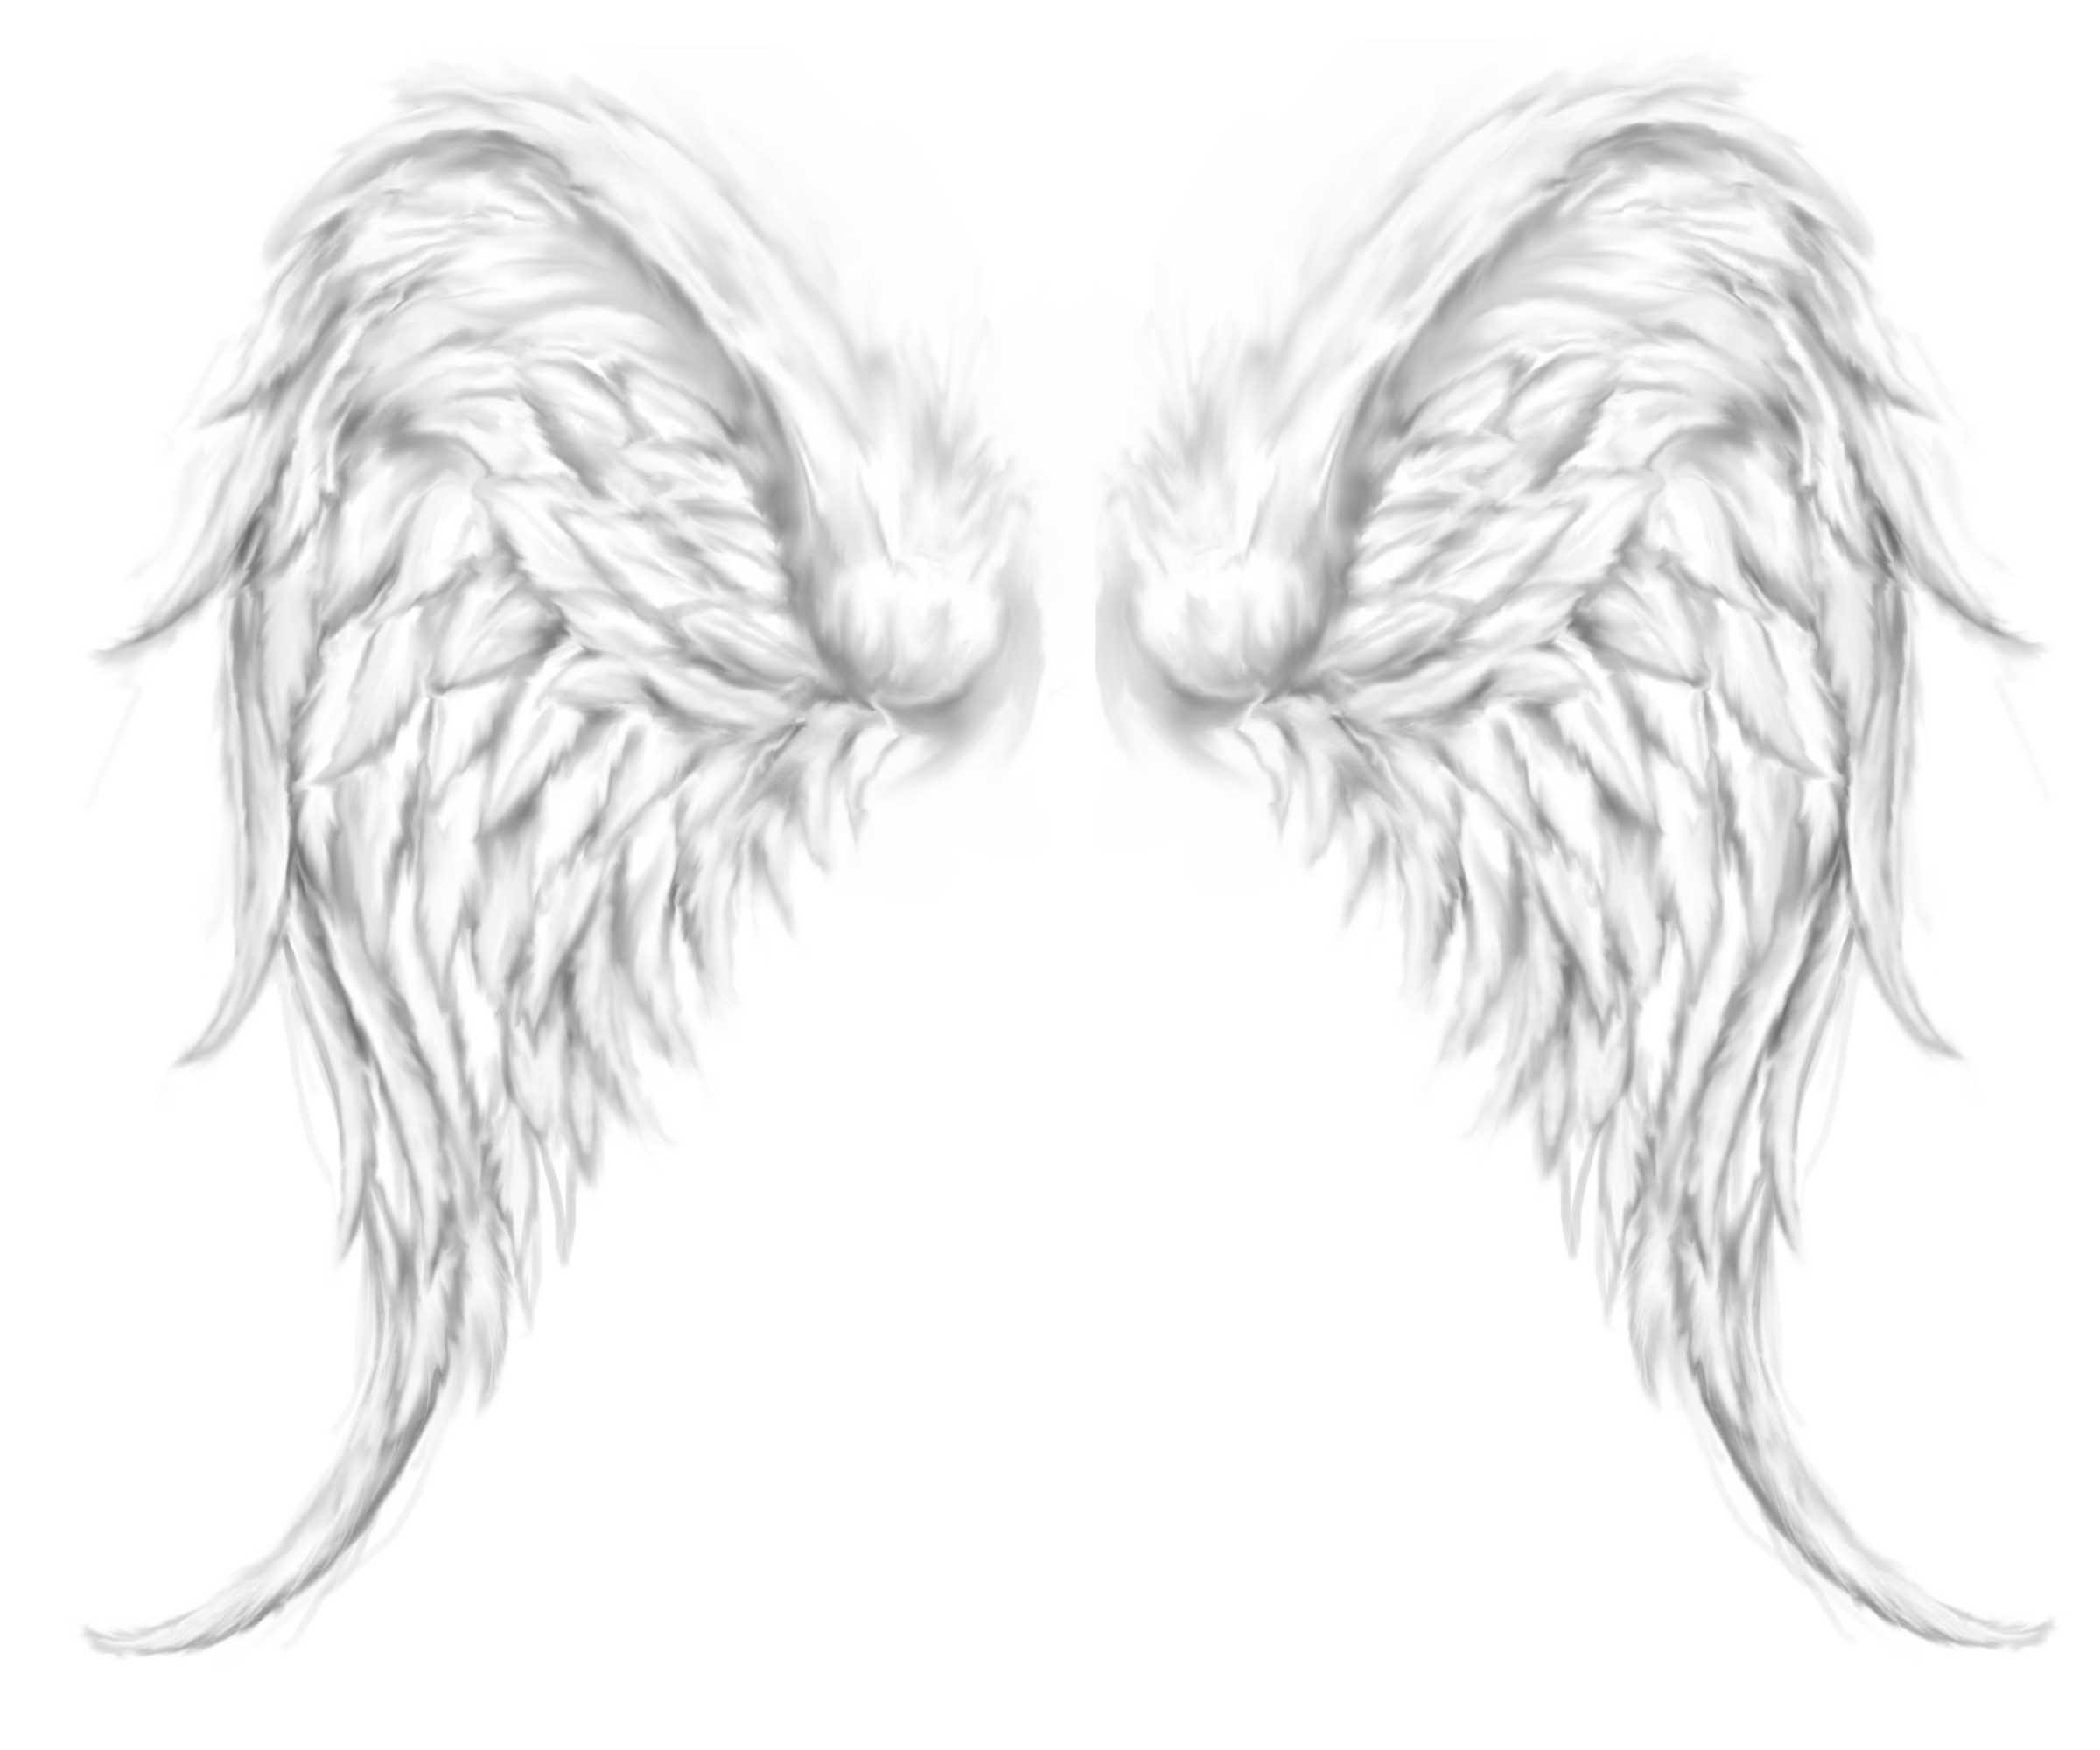 Cool Tattoo Backgrounds: Angel Wings Background (49+ Images